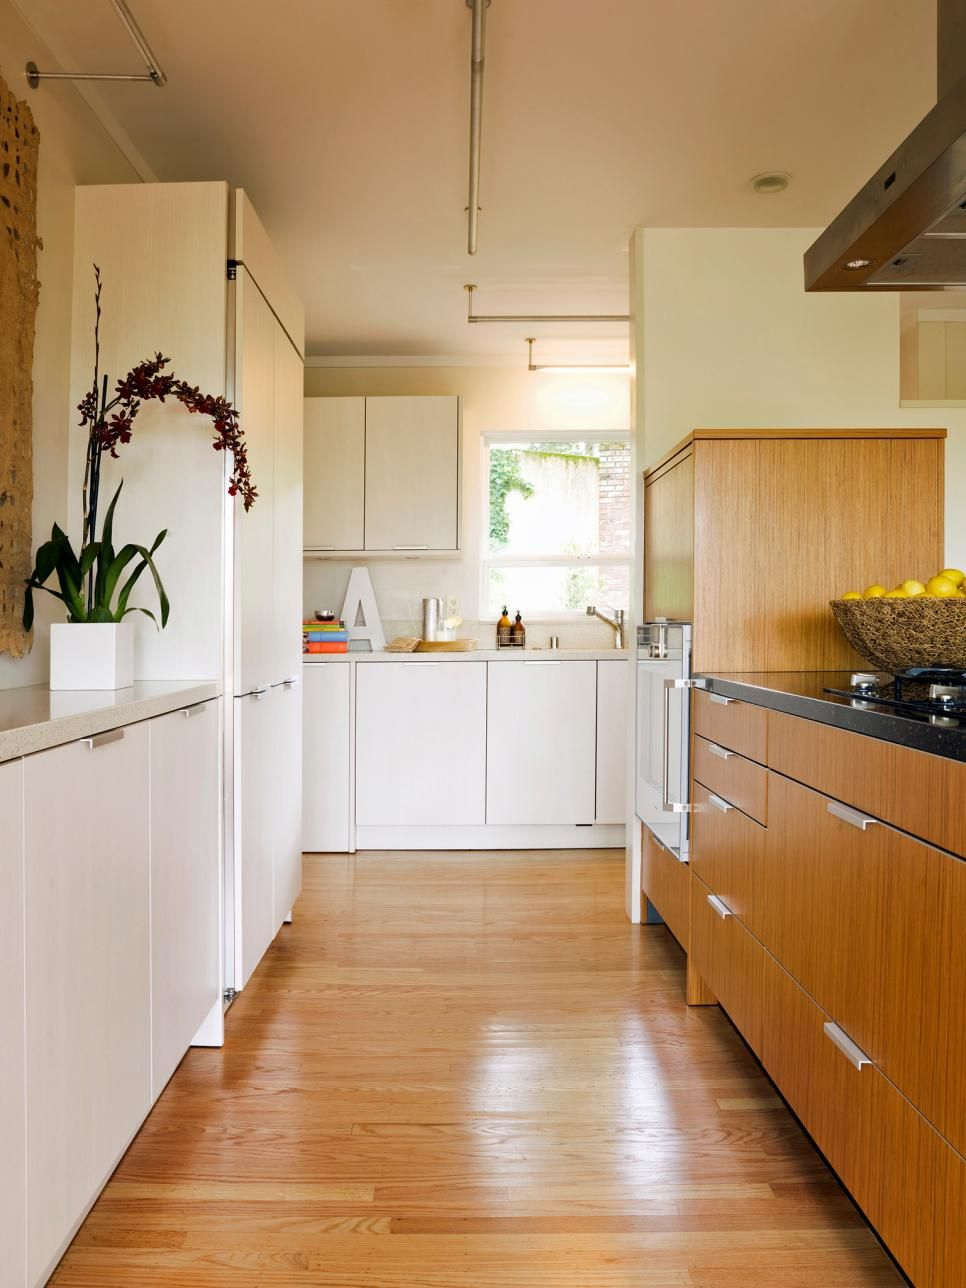 Think Beyond The Basic Work Triangle Kitchens Come In All Shapes From The Space Saving Galley To Kitchen Remodel Small Galley Kitchen Design Kitchen Layout